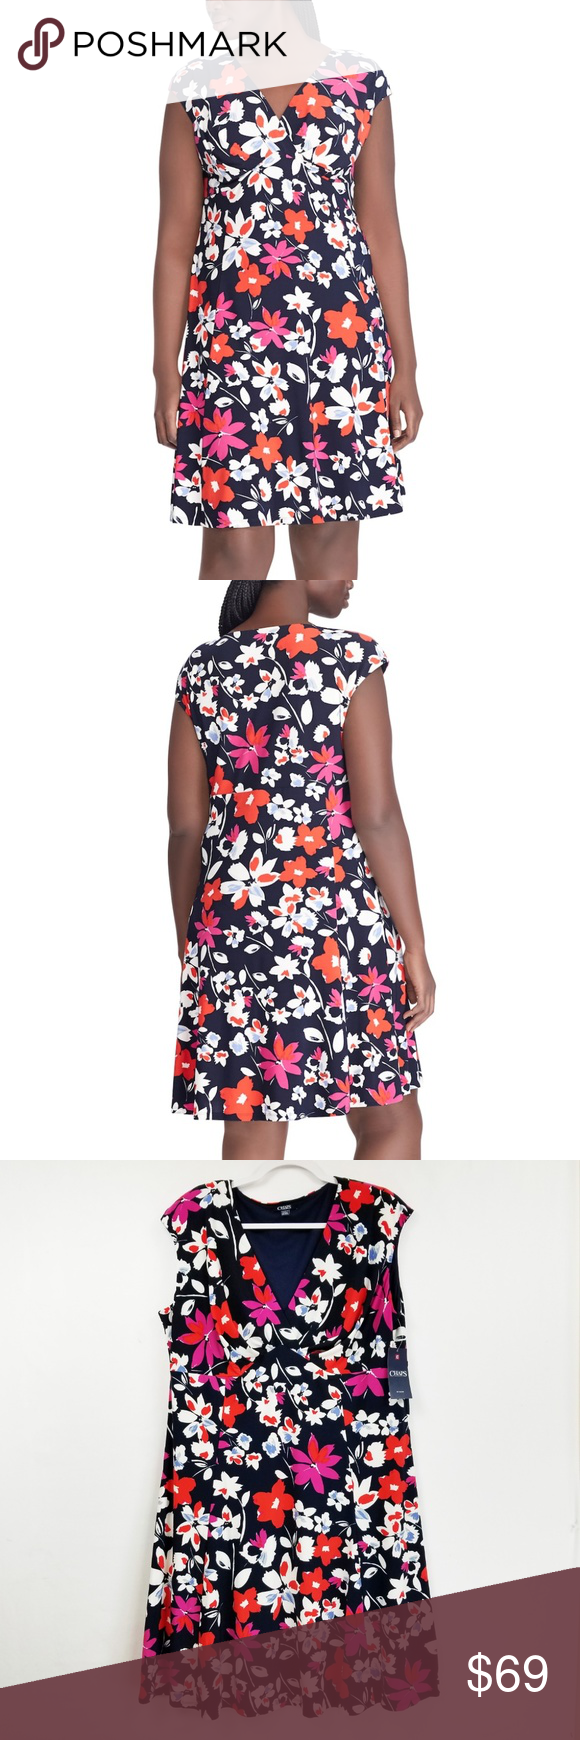 ee7626fc11a Plus Size Chaps Floral Empire Dress A pretty floral print and a flattering  empire waistband give this women s Chaps dress a lovely look that flatters.